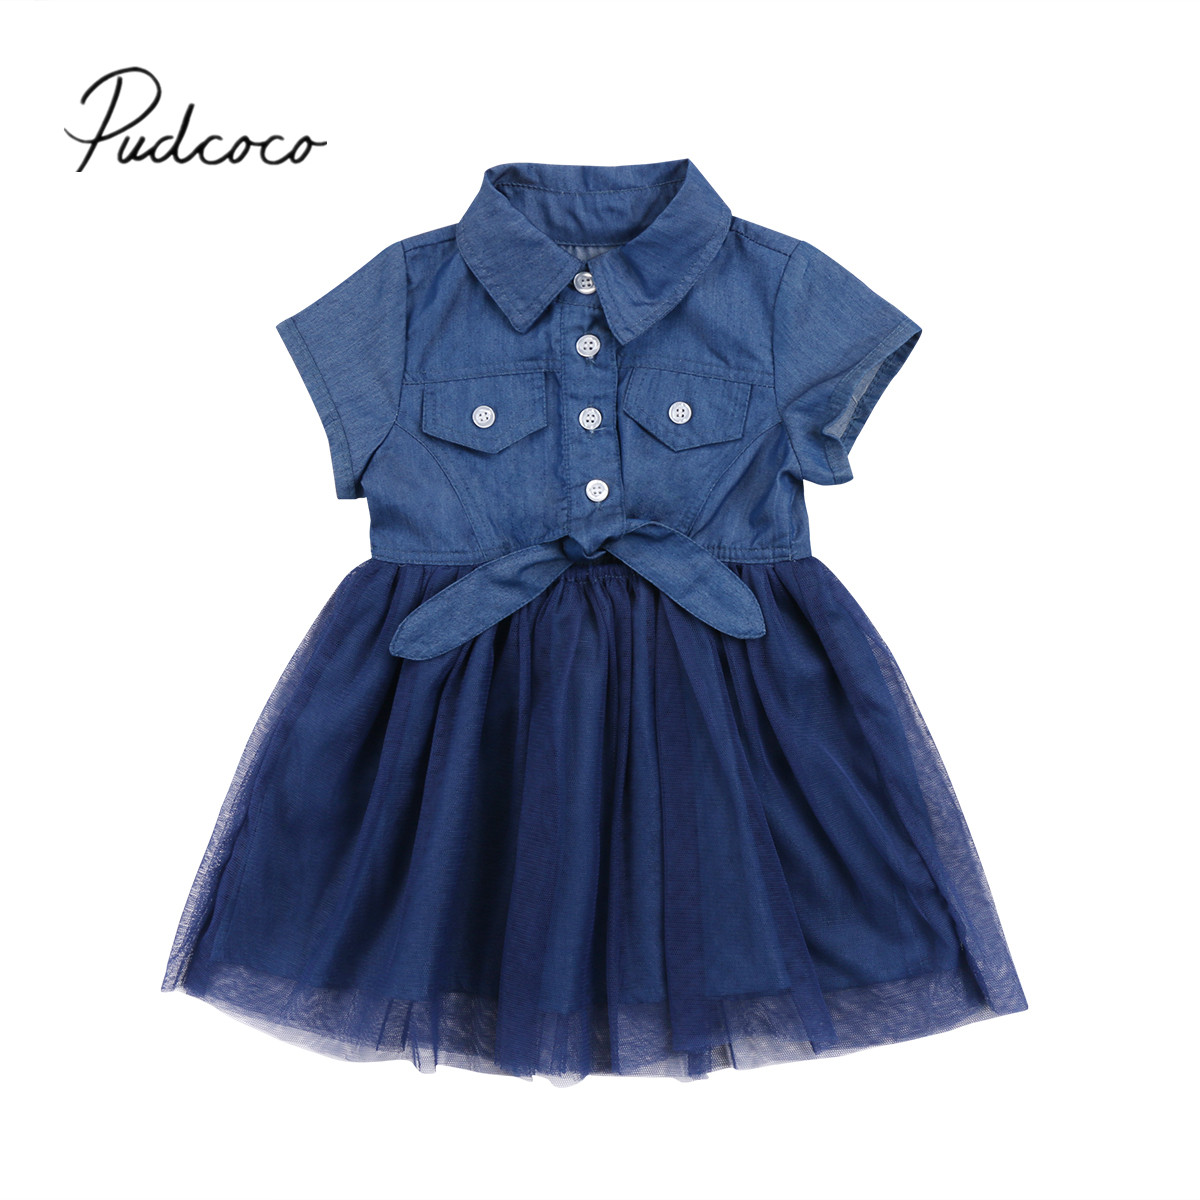 2018 Brand New Toddler Infant Children Kids Baby Girls Denim Casual Dress Bowknot Sundress Clothes Tutu Tulle Dress Outfits baby girl 1st birthday outfits short sleeve infant clothing sets lace romper dress headband shoe toddler tutu set baby s clothes